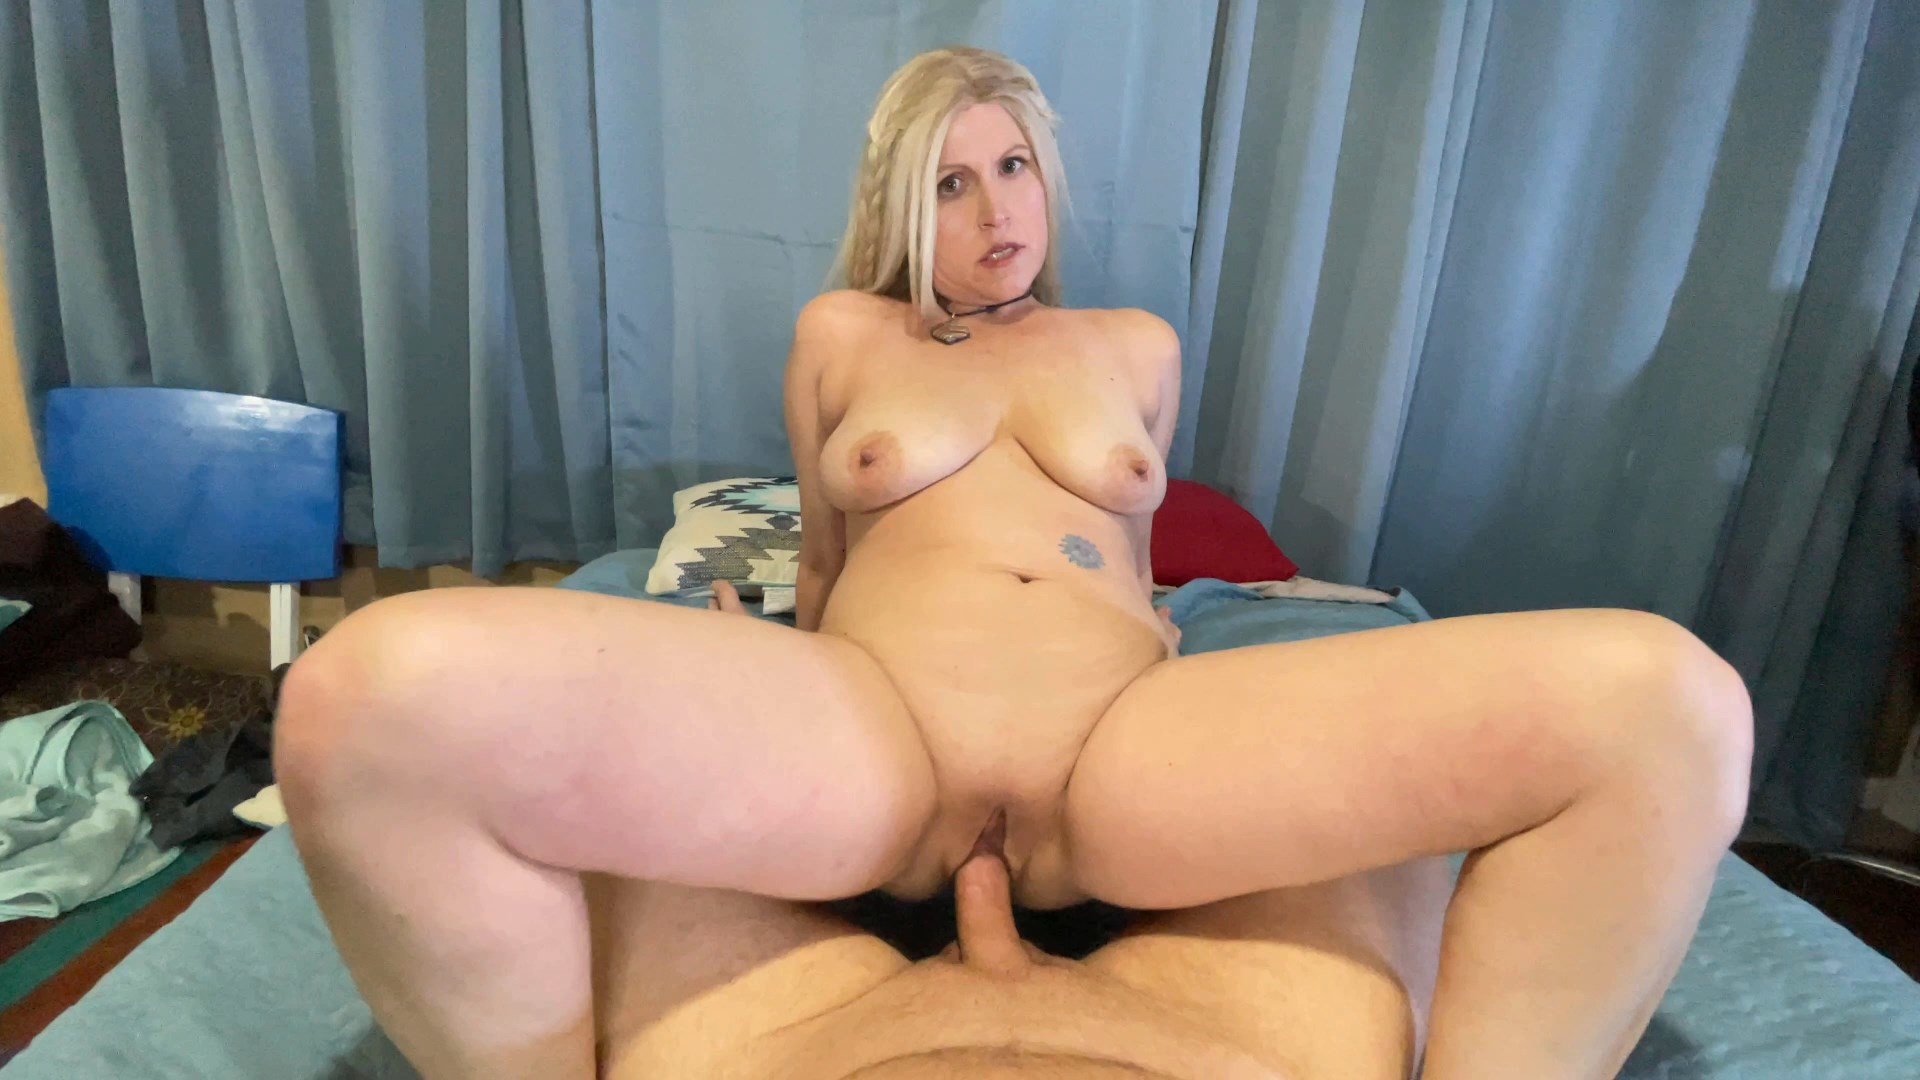 TabithaXXX - Horny Mom Rides Virgin Son Hard